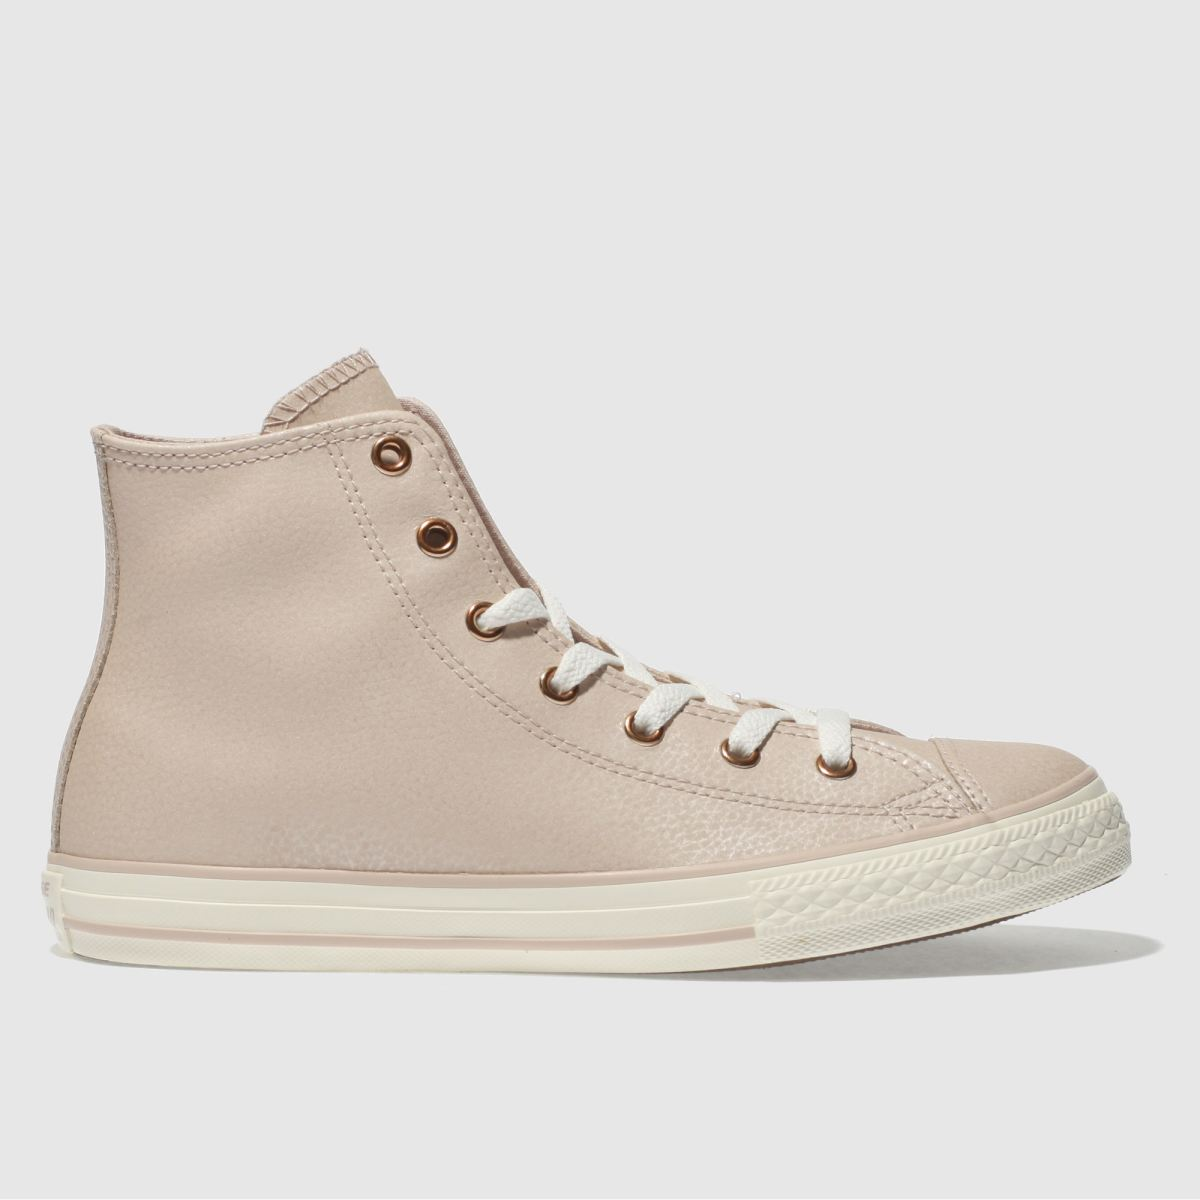 Converse Pale Pink Chuck Taylor All Star Hi Girls Youth Trainers